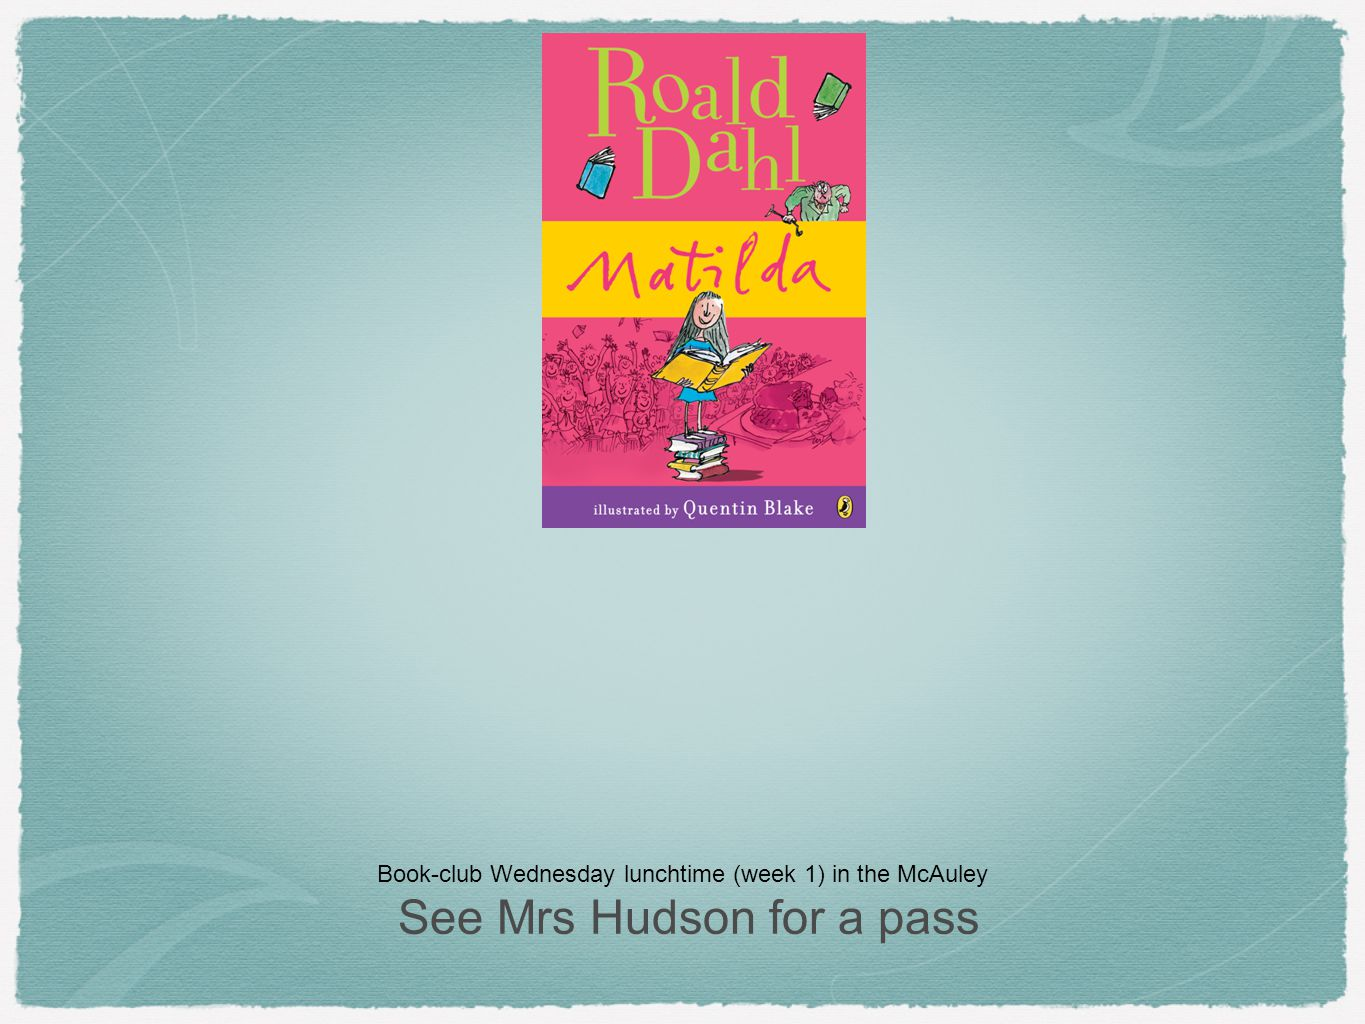 Book-club Wednesday lunchtime (week 1) in the McAuley See Mrs Hudson for a pass